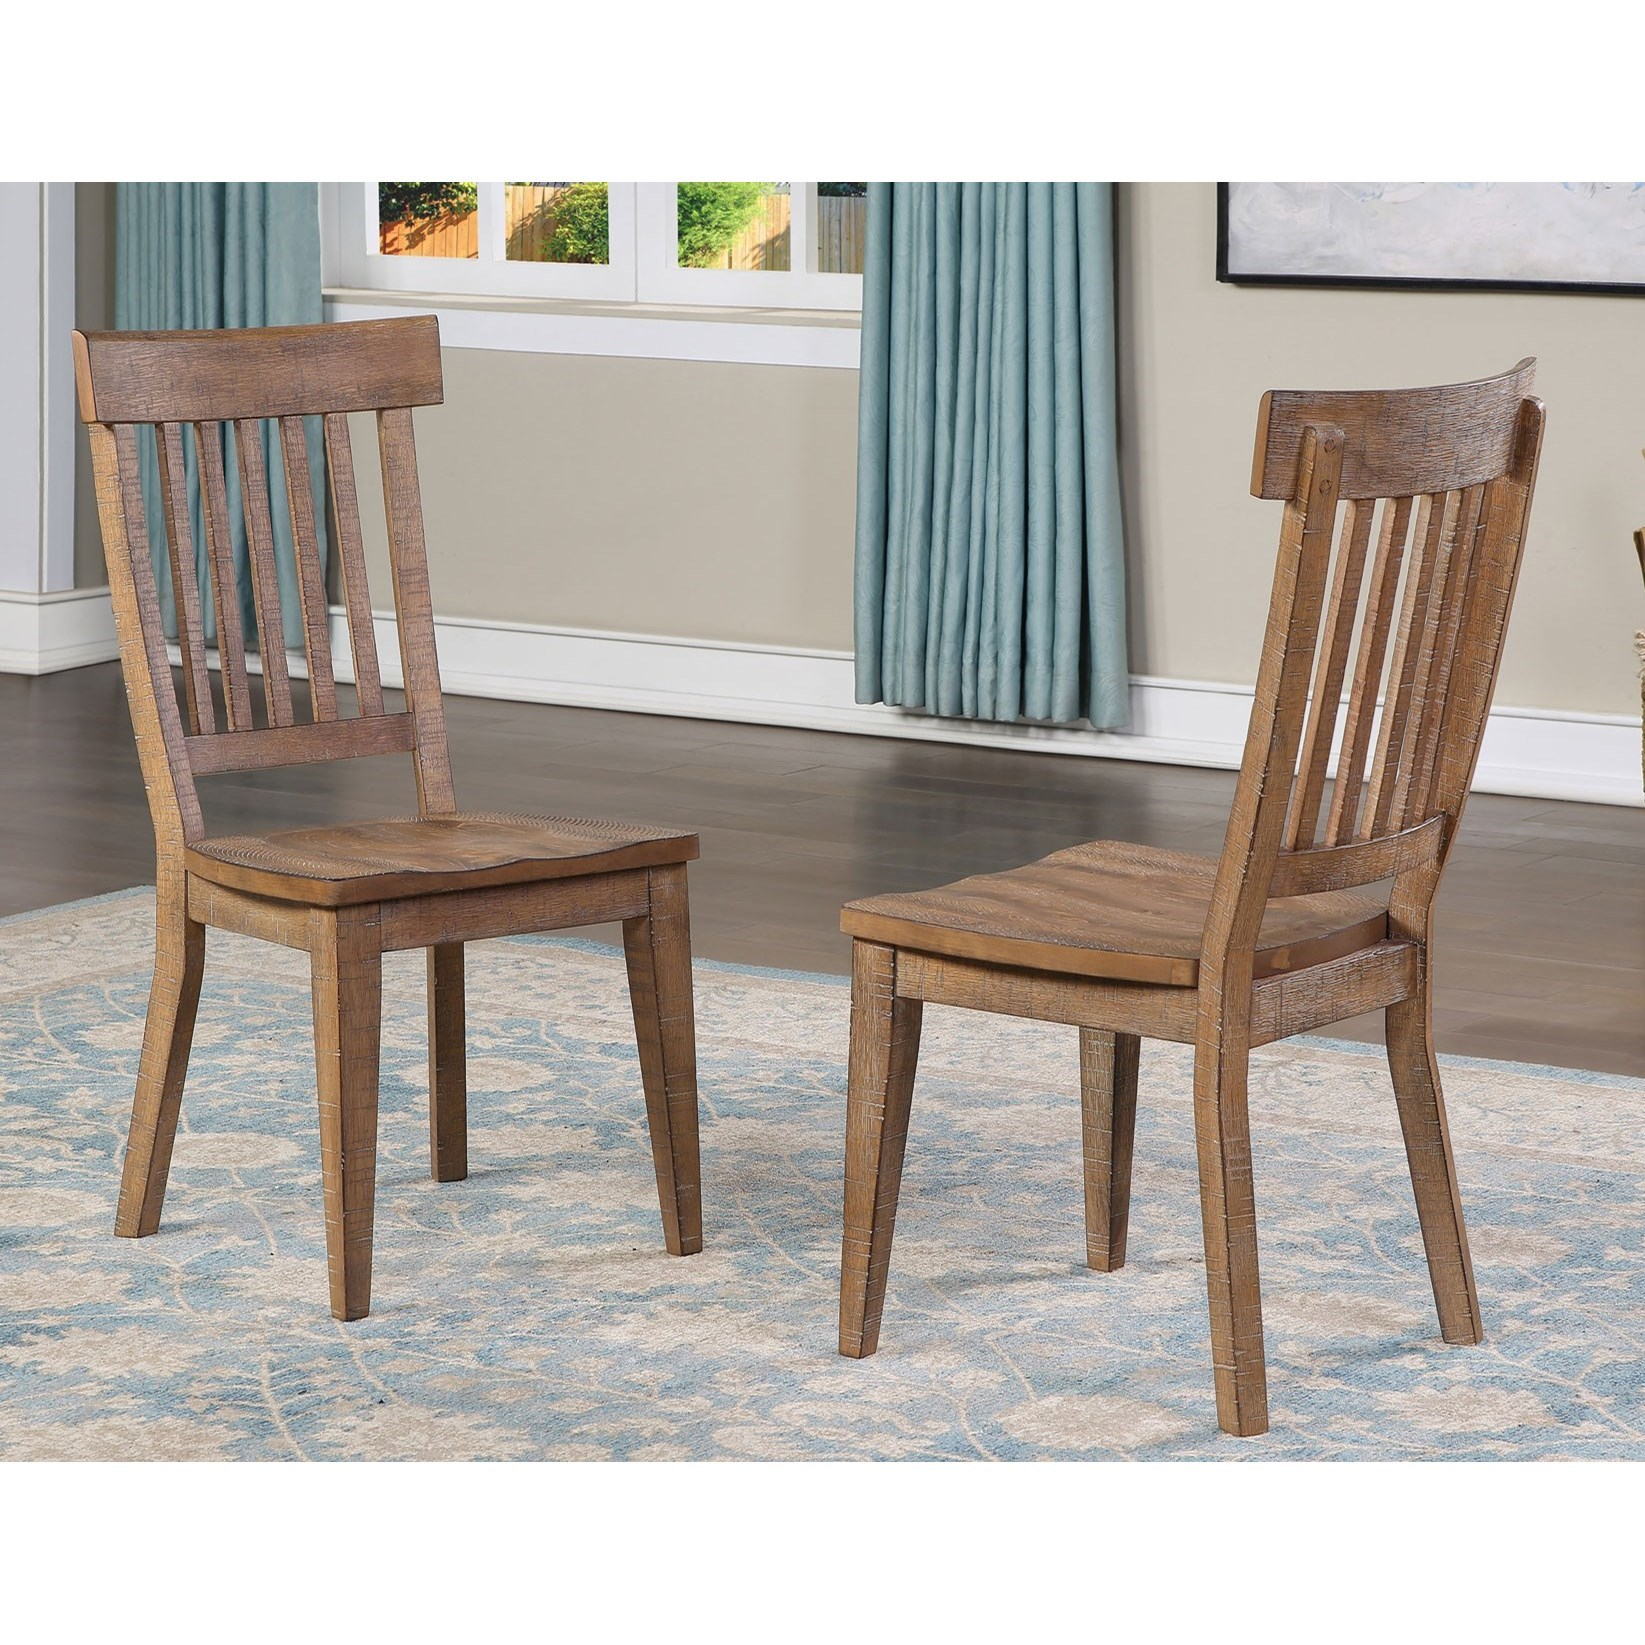 Riverdale Side Chair by Steve Silver at Walker's Furniture